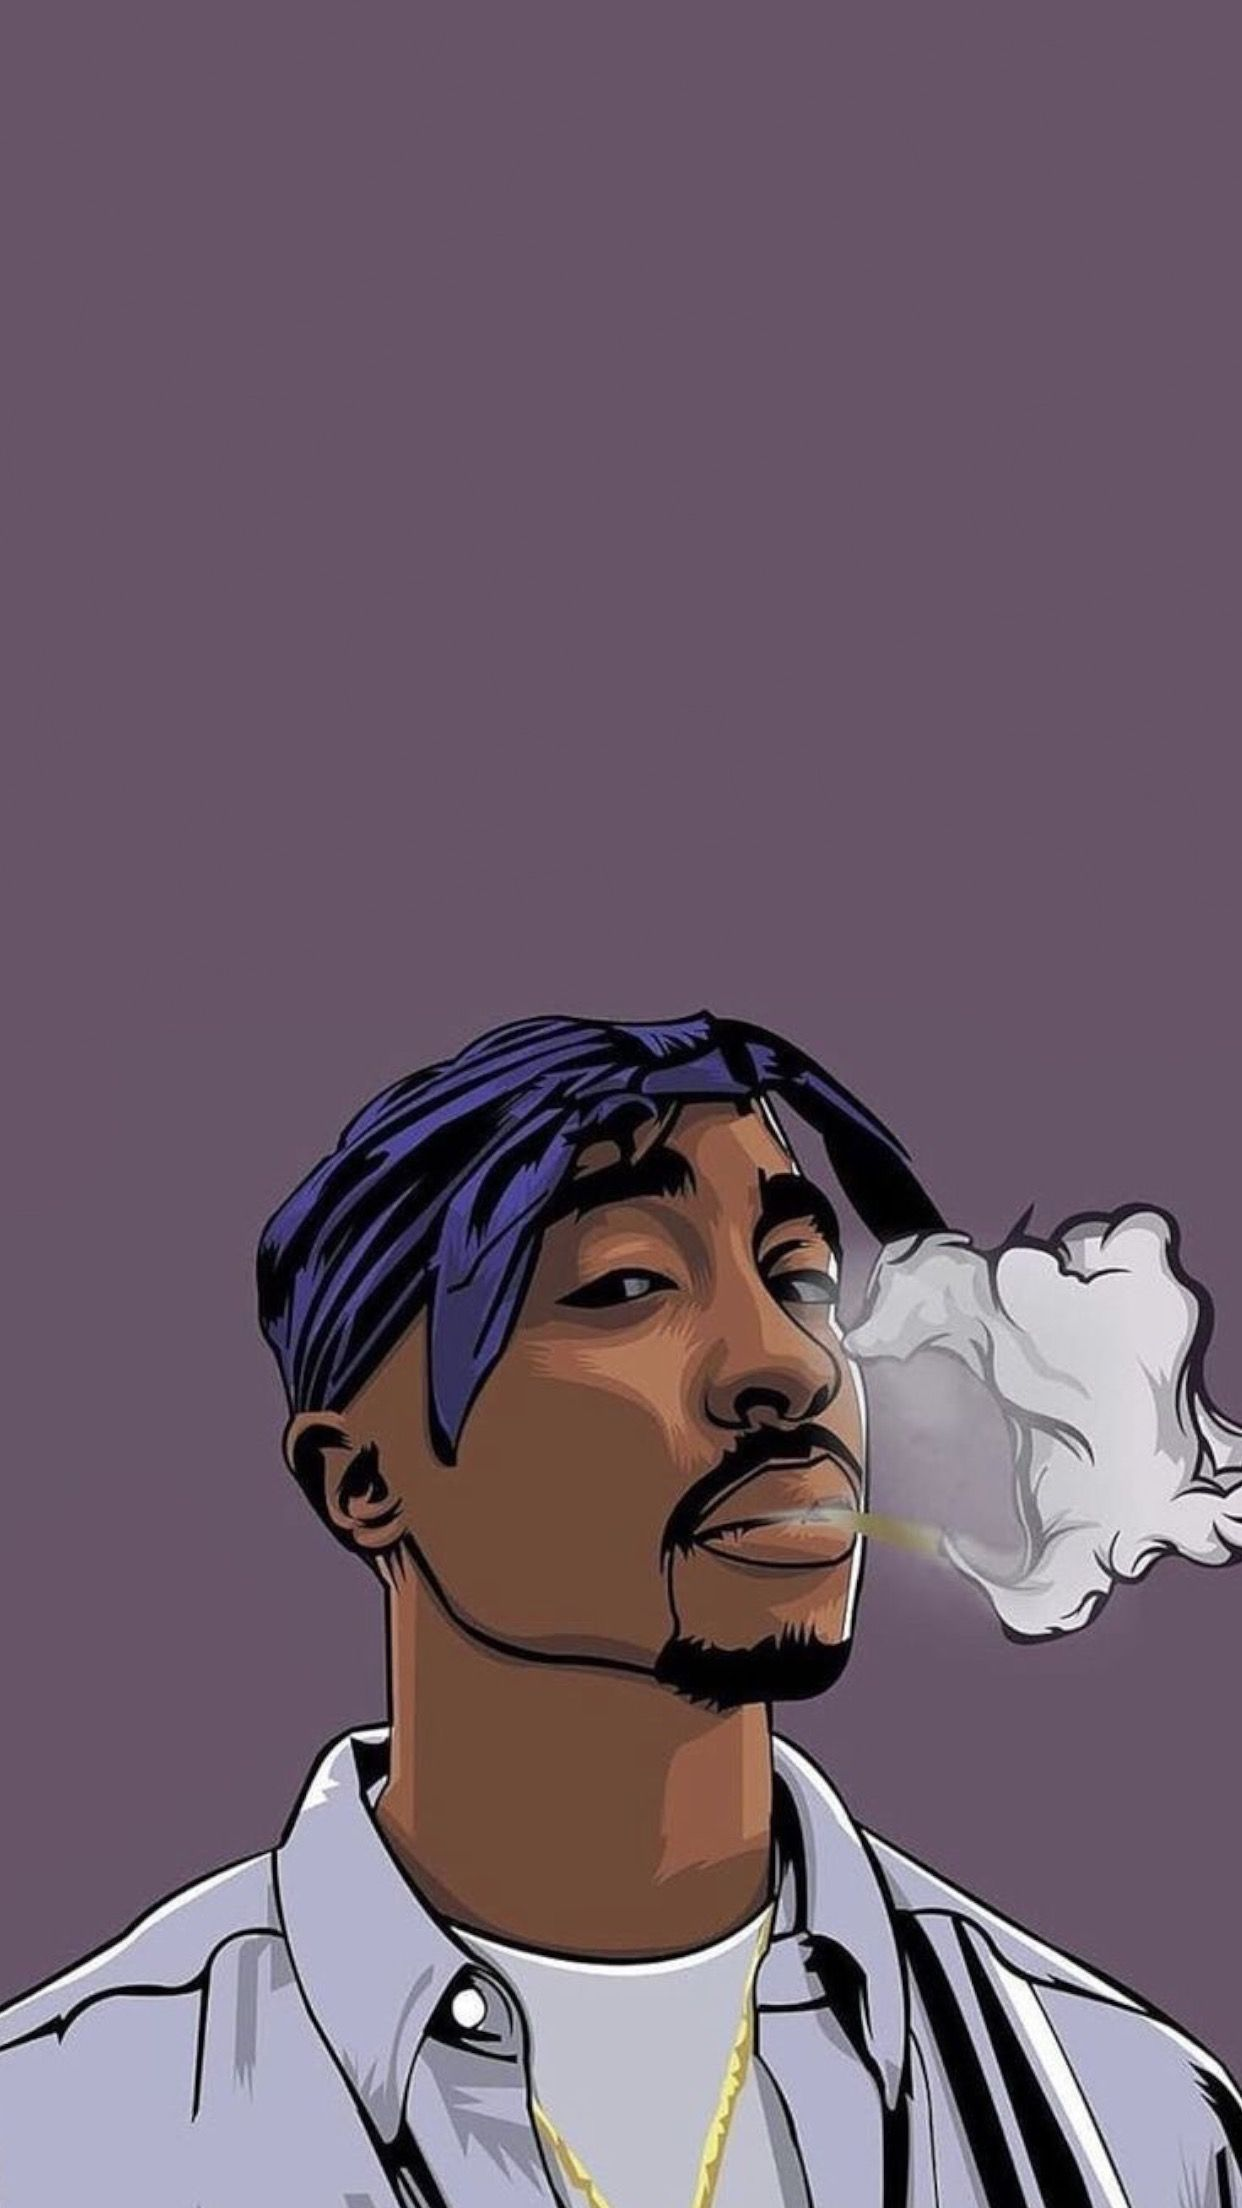 Tupac iPhone Wallpaper Tupac 2pac wallpaper Rapper